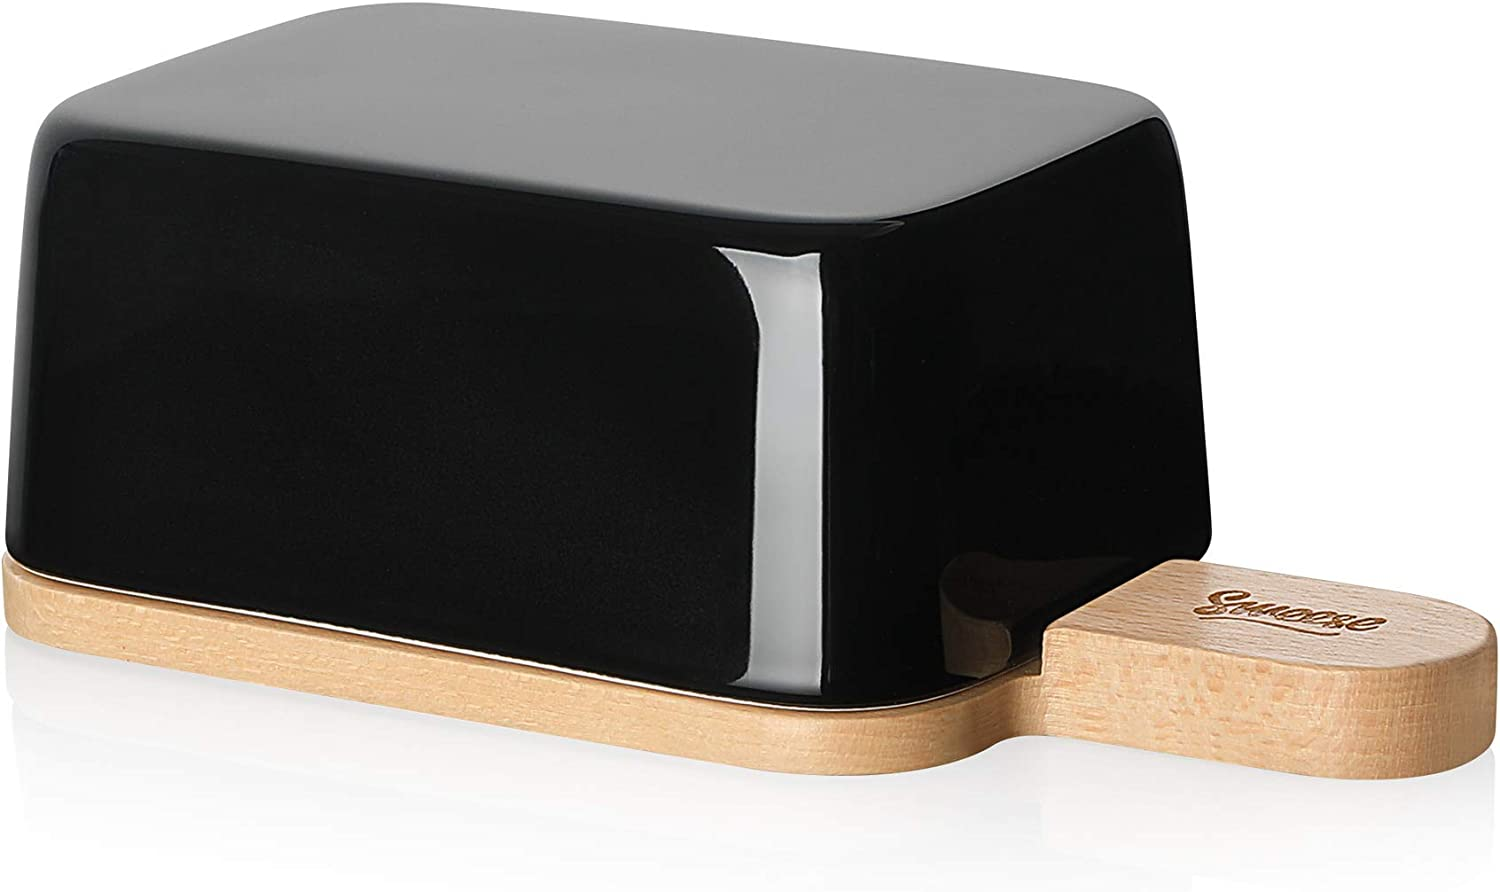 Sweese 323.112 Butter Dish with Lid and Handle, Porcelain Butter Keeper and Extended Wooden Lid, Black